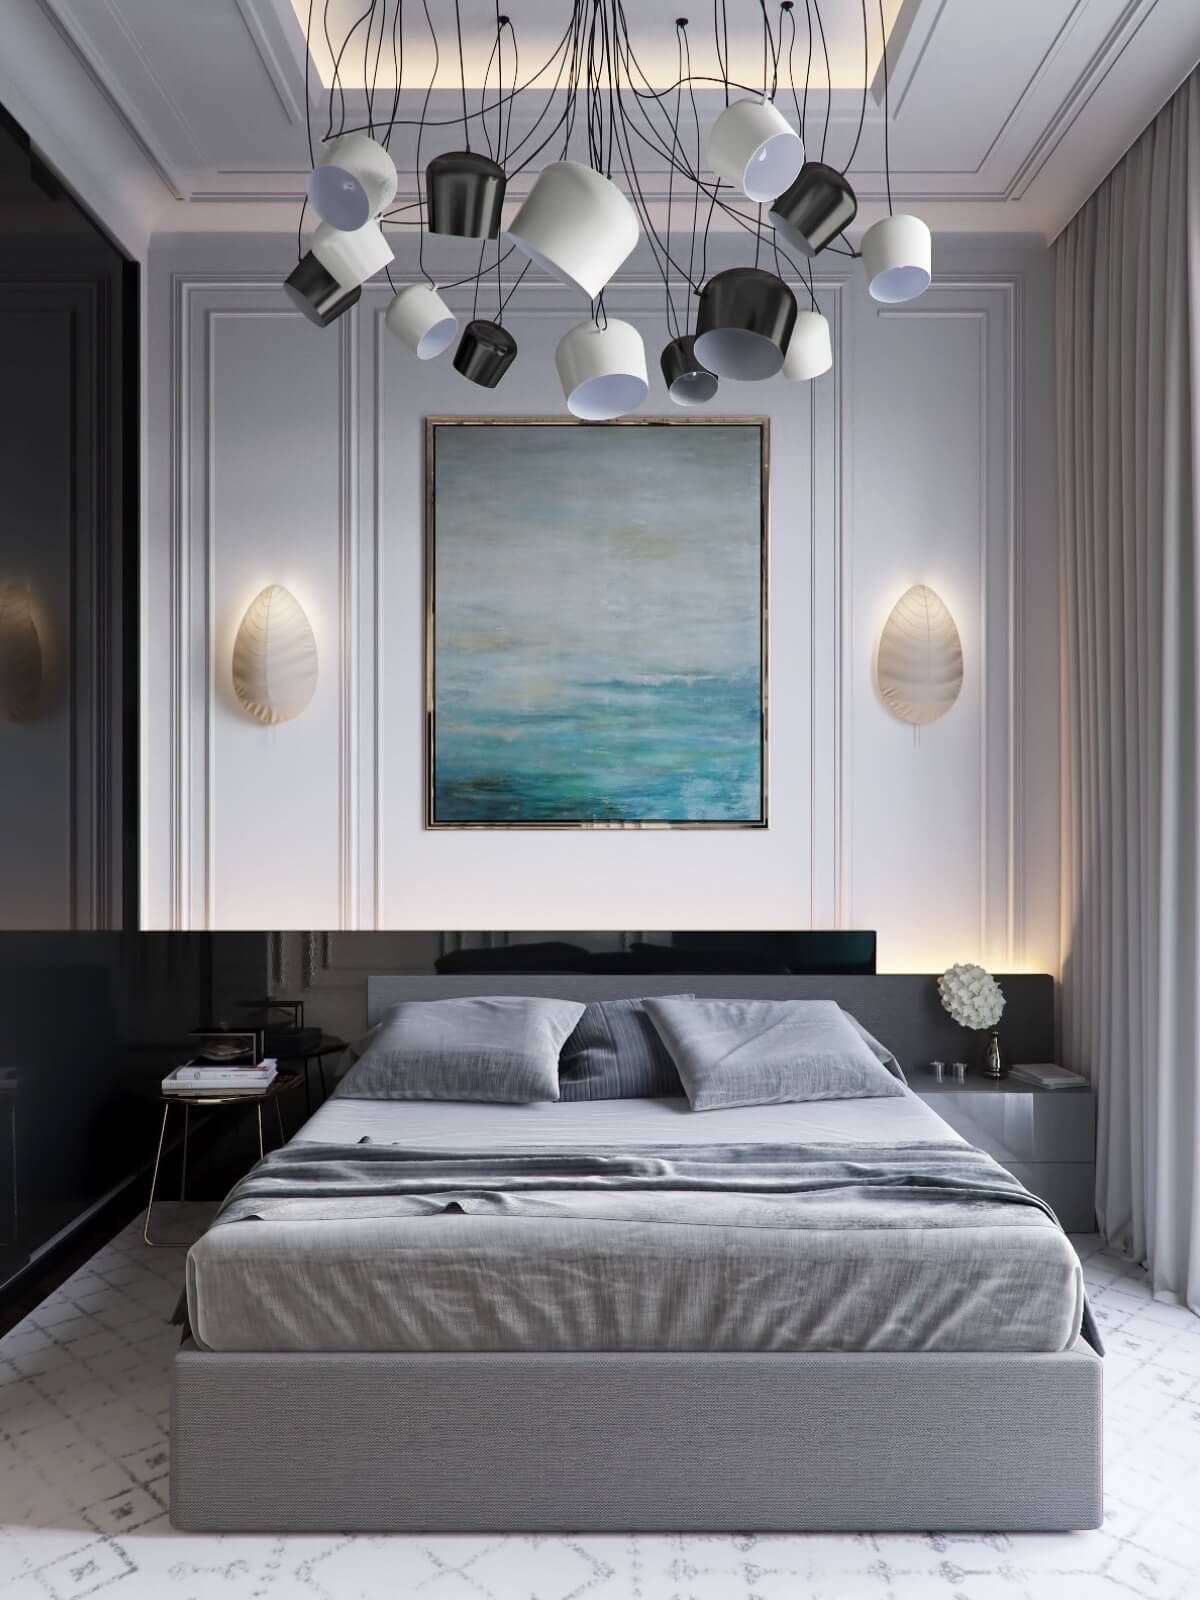 Master bedroom 2018 trends   Bedroom Design Trends You Donut Want to Miss  Room ideas